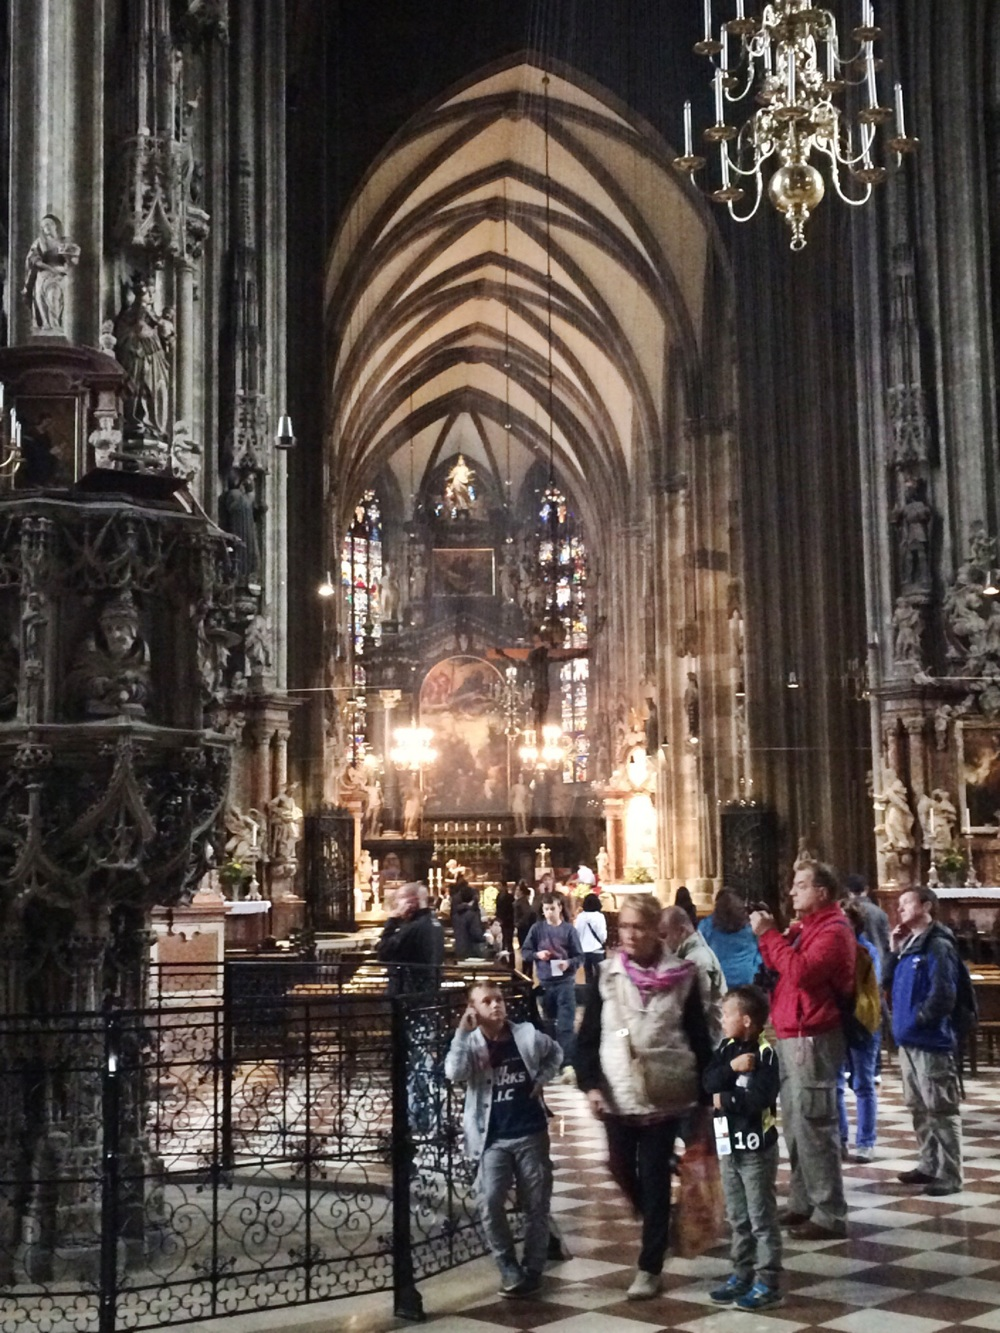 St Stephens Cathedral - string quartet playing in the background